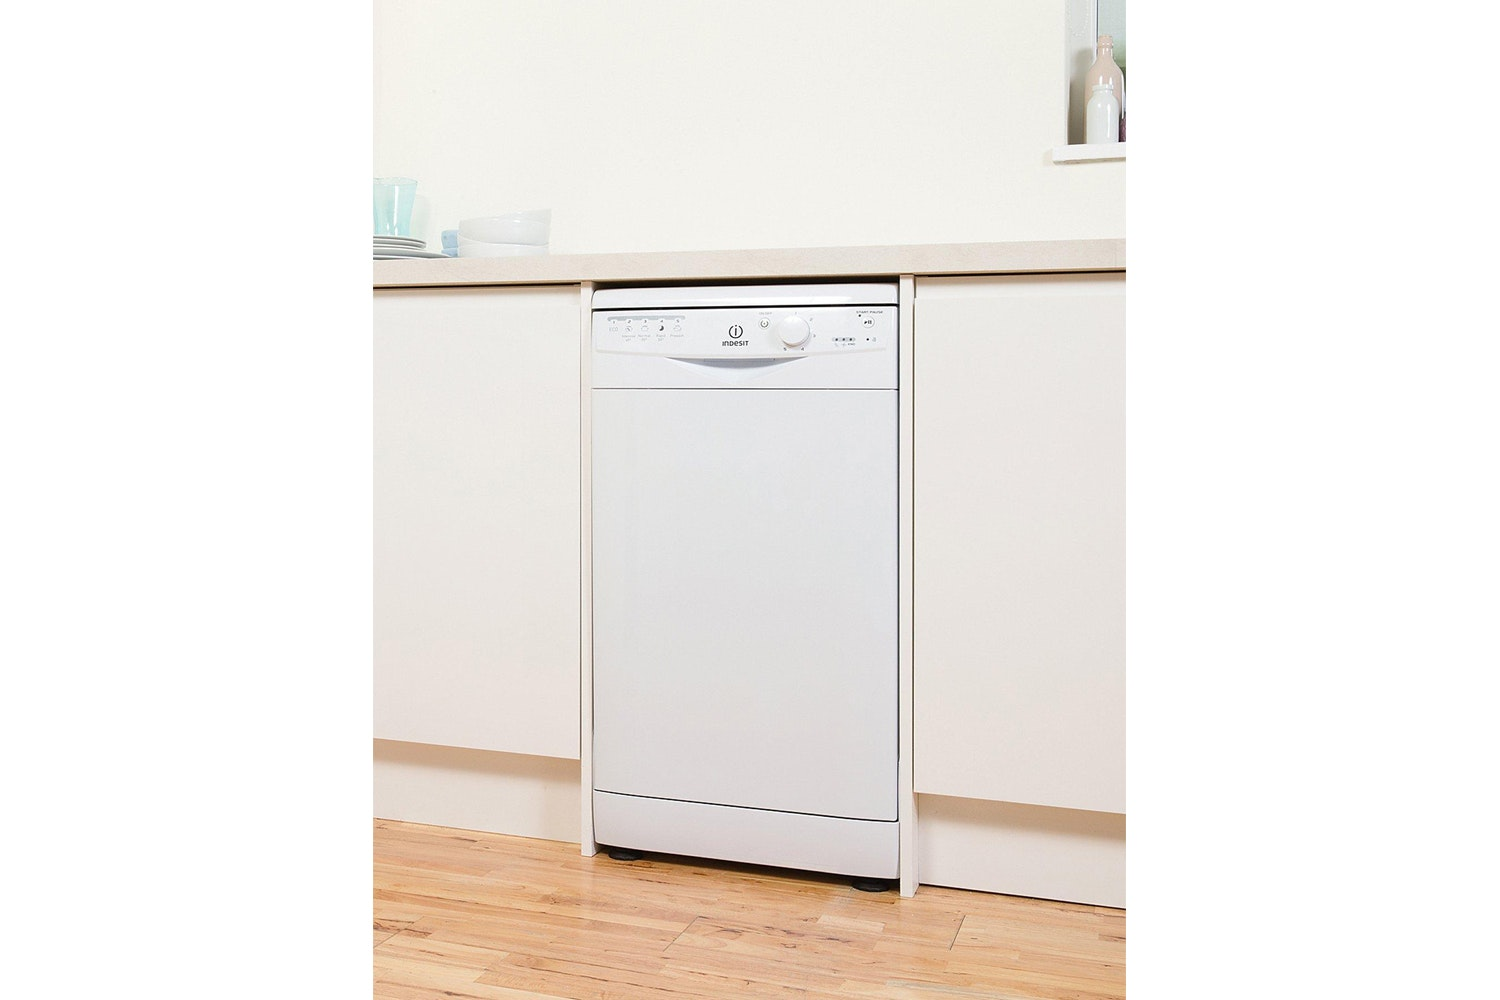 Indesit Slimline Dishwasher | 10 Place | DSR15B